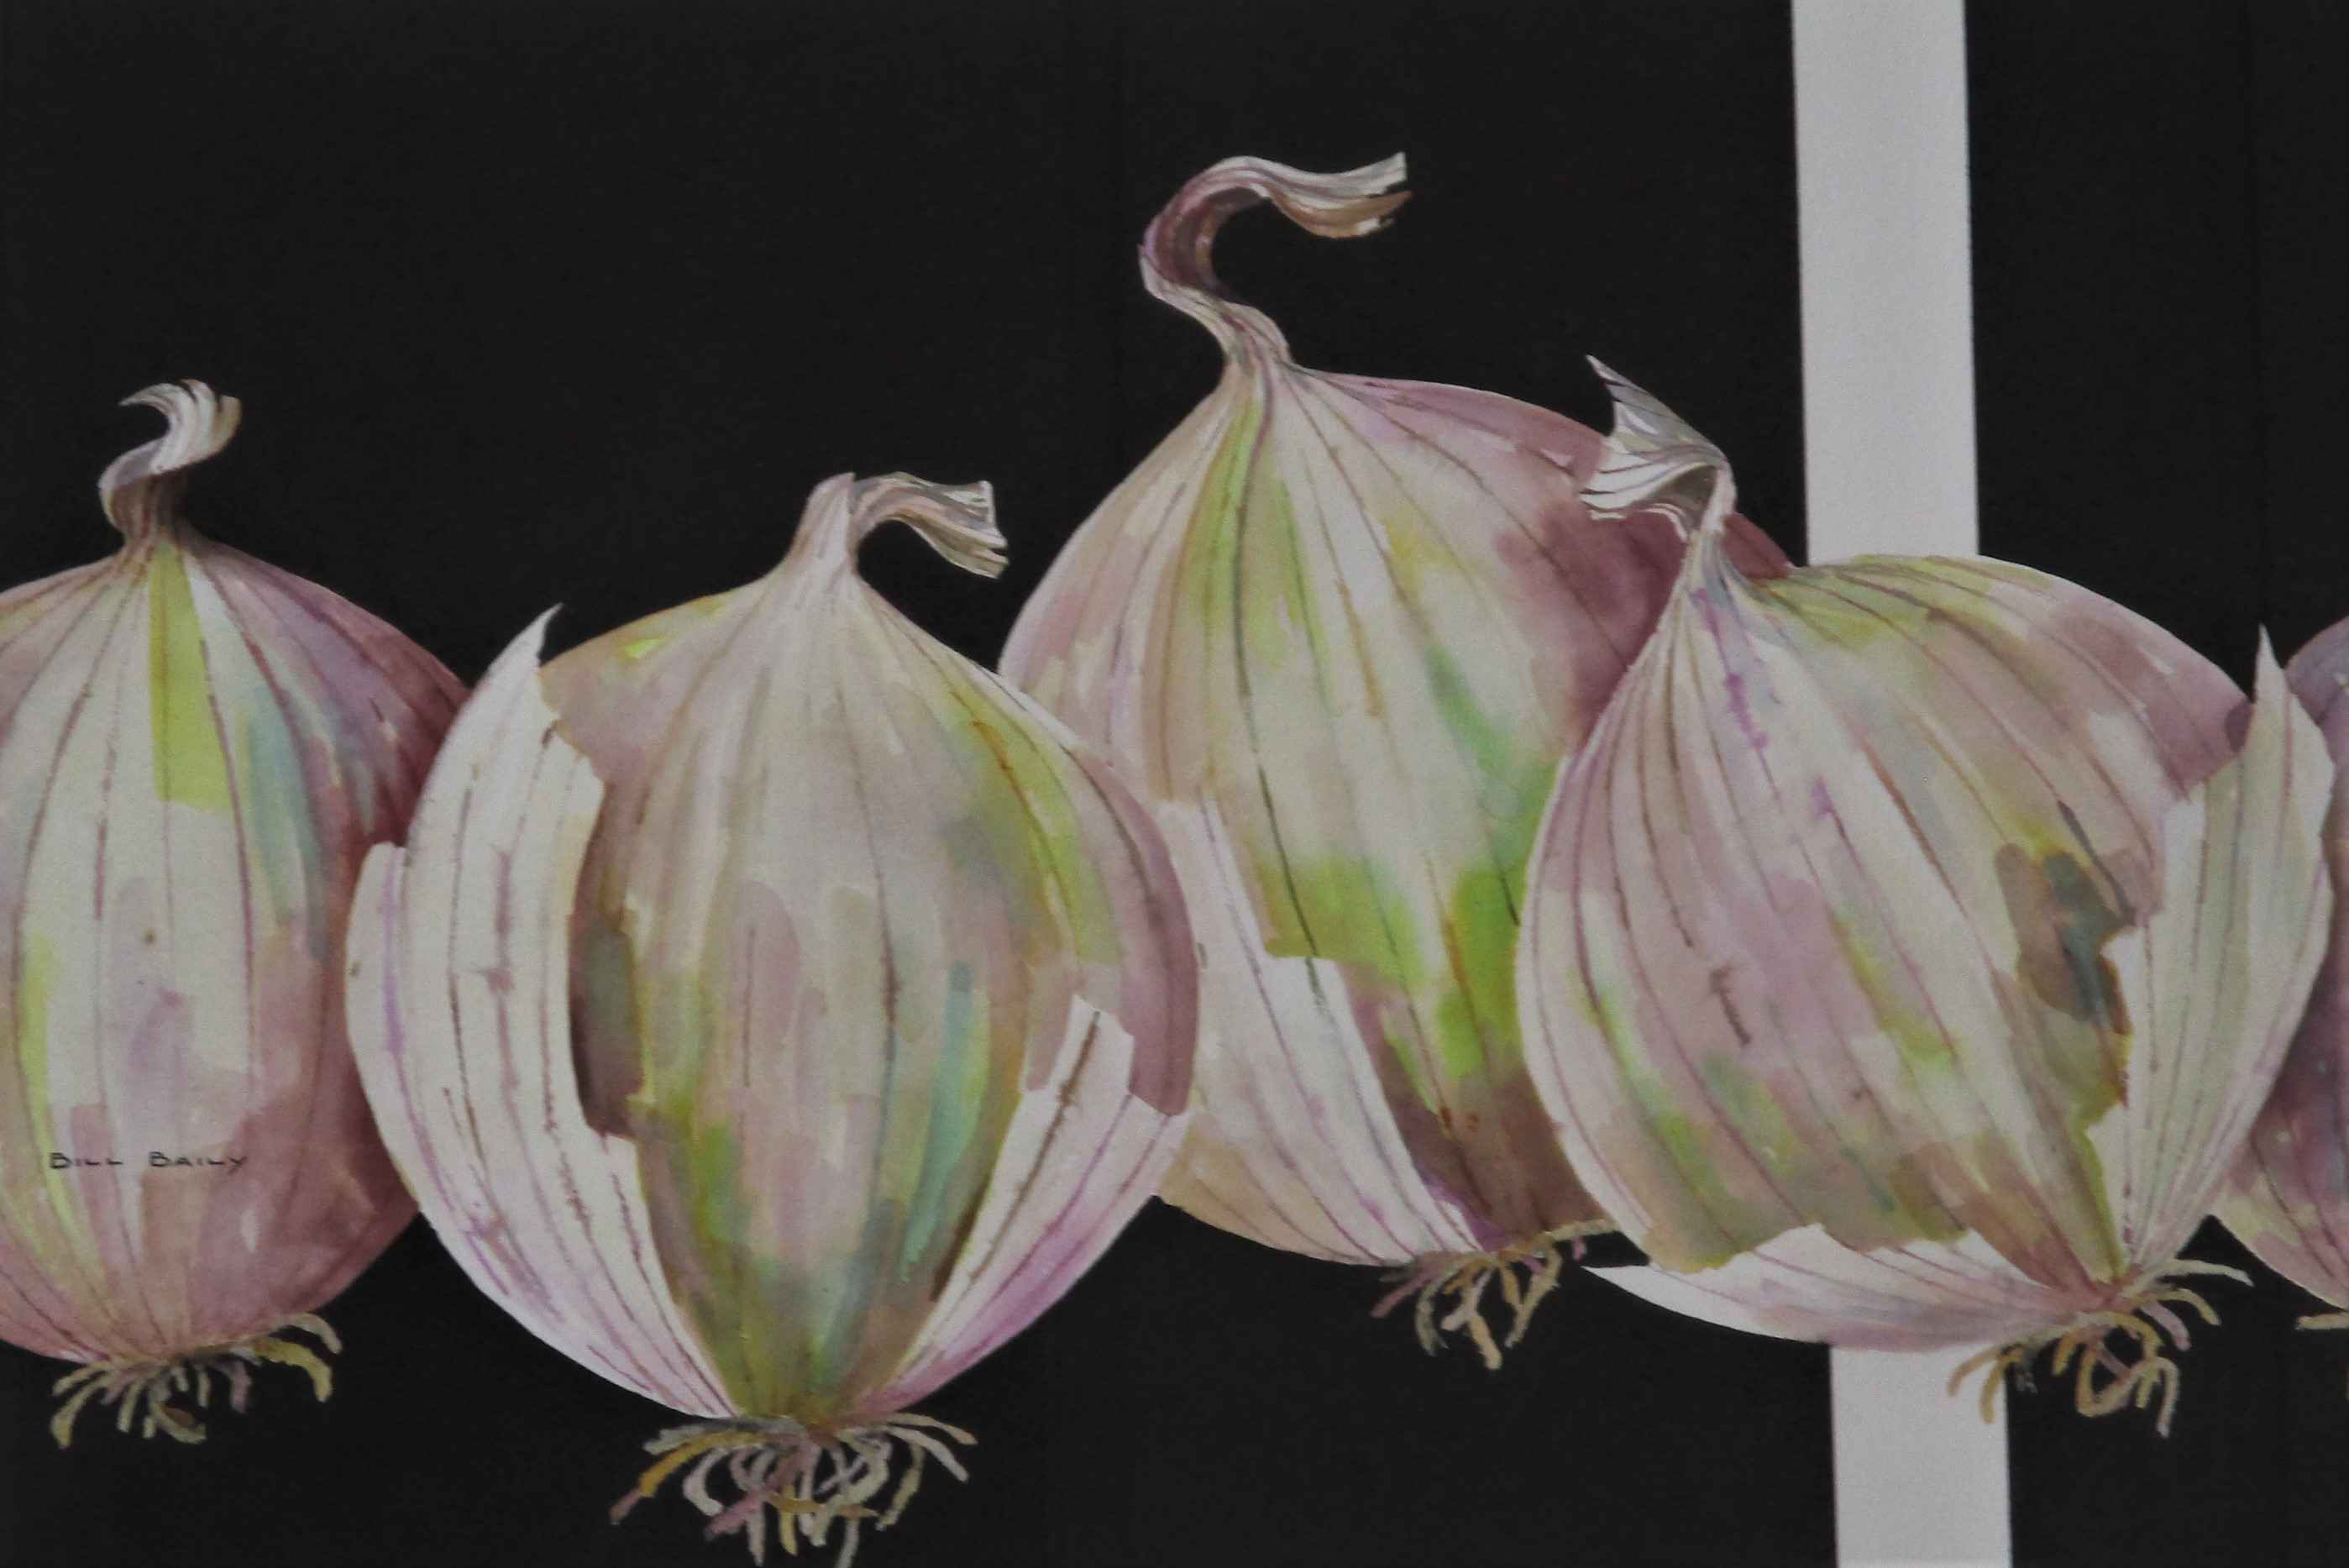 White Onions by  Bill Baily - Masterpiece Online